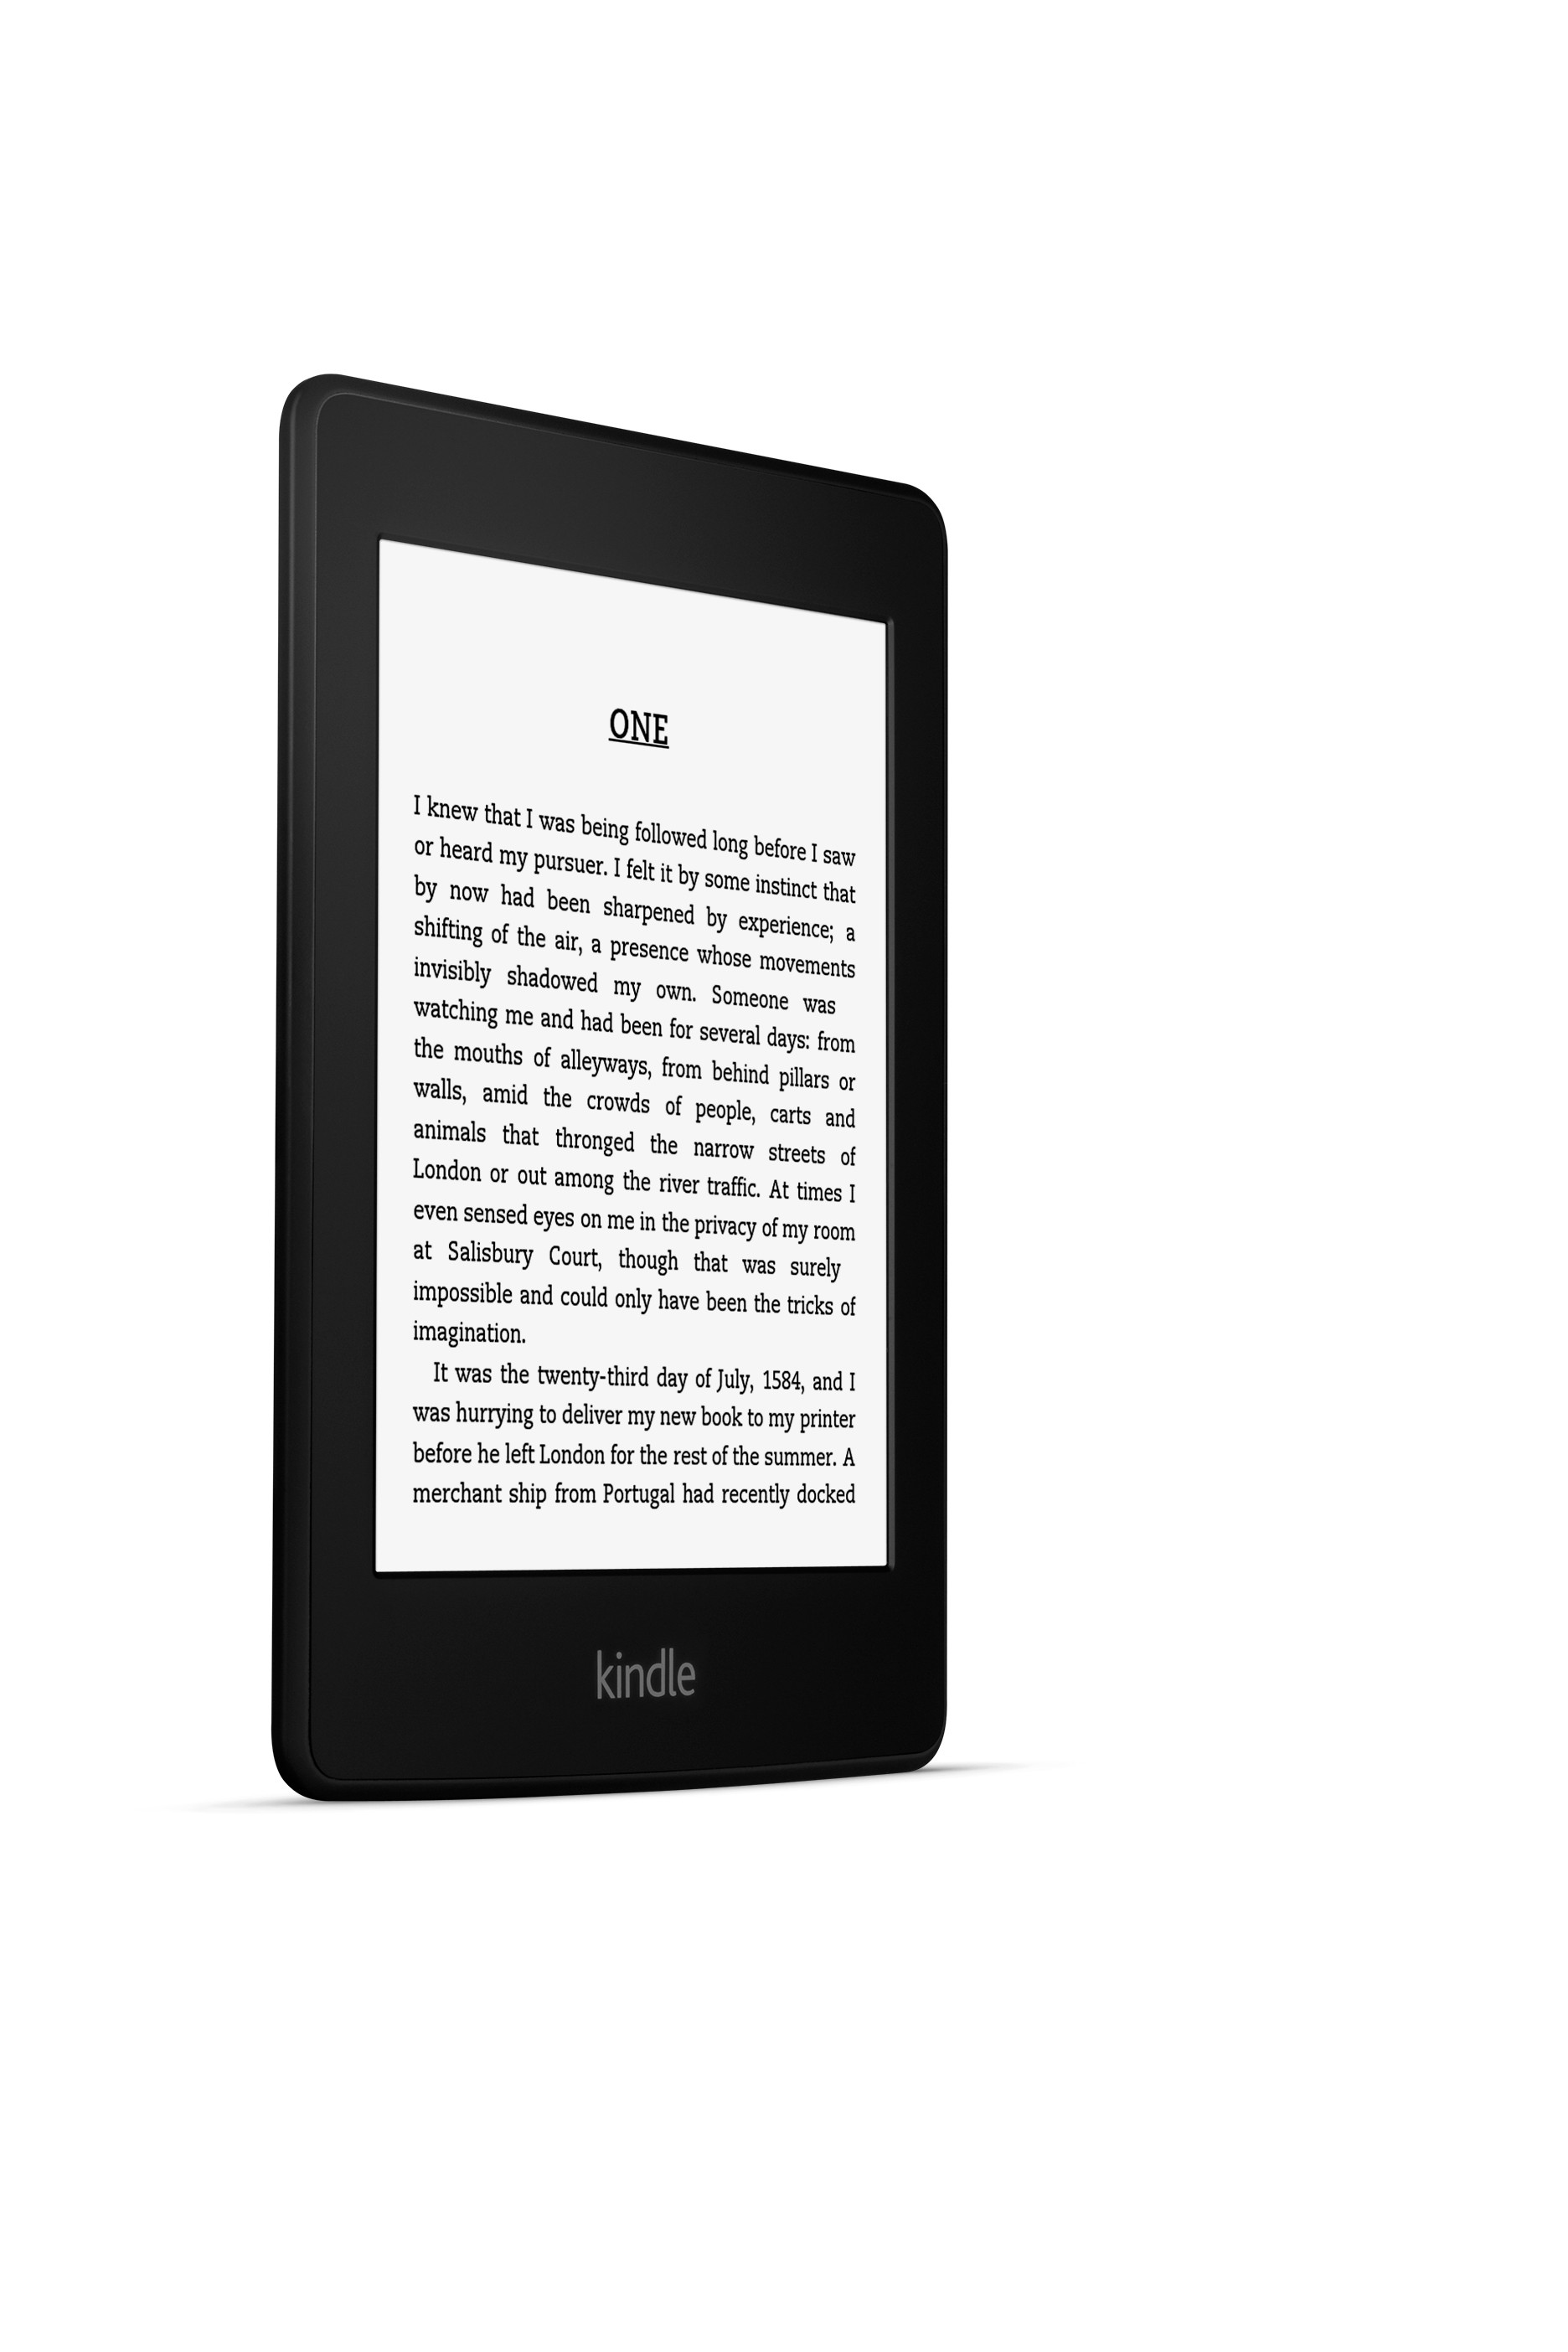 Amazon Uk Books Amazon Brings Free Kindle Library To Uk With New Paperwhite E